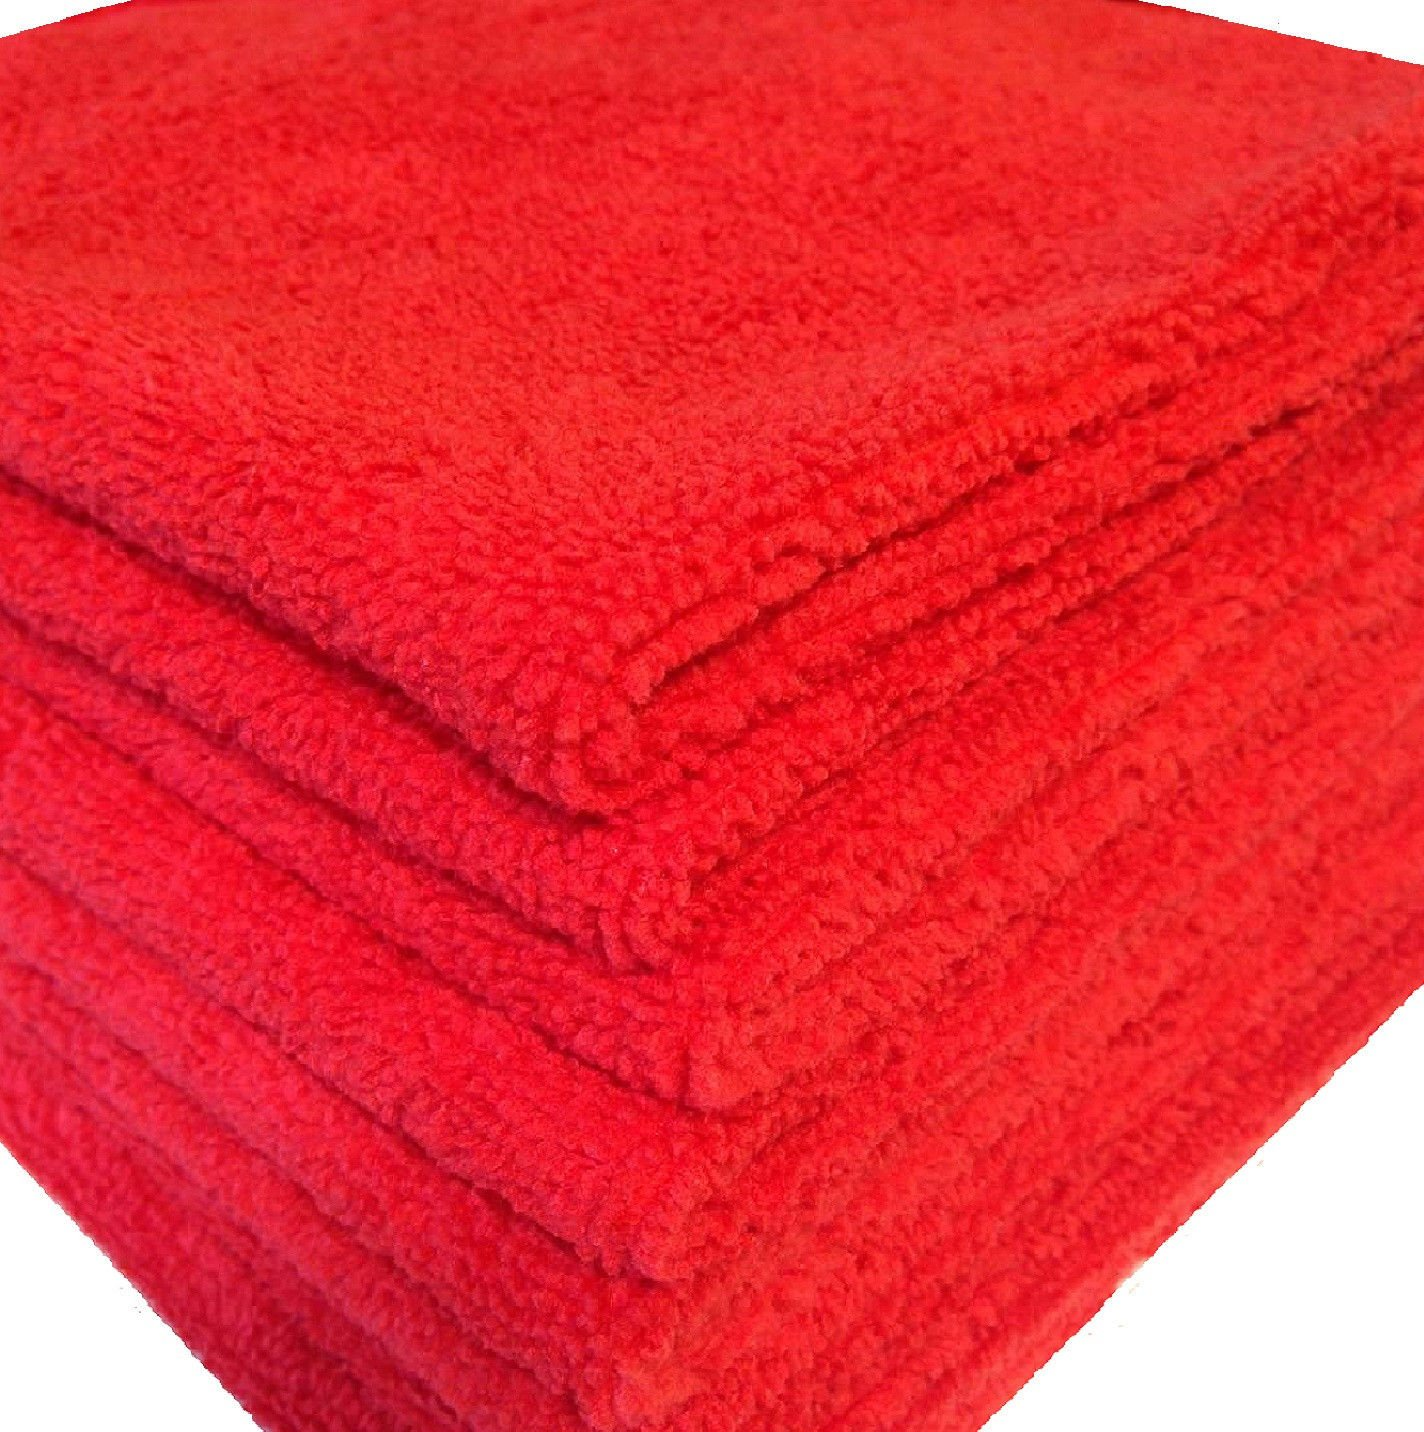 GHP 60Pcs. 16''x16'' Red Ultra Absorbent Microfiber Cleaning Cloth/Towel